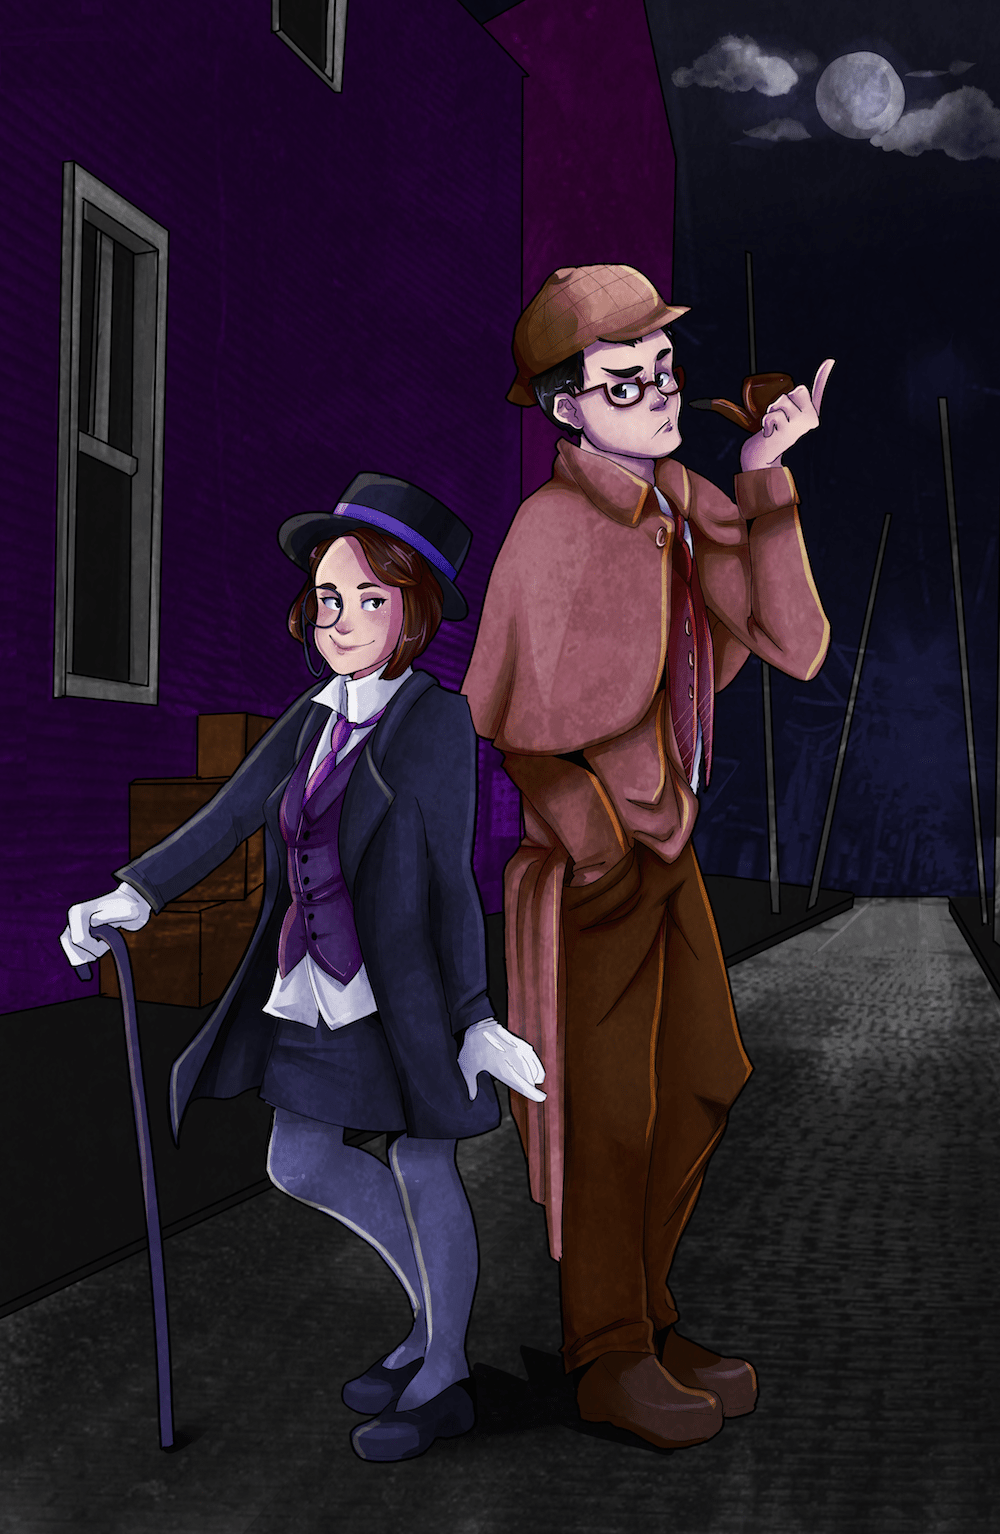 The Detective Couple by AruRmz via ArtCorgi